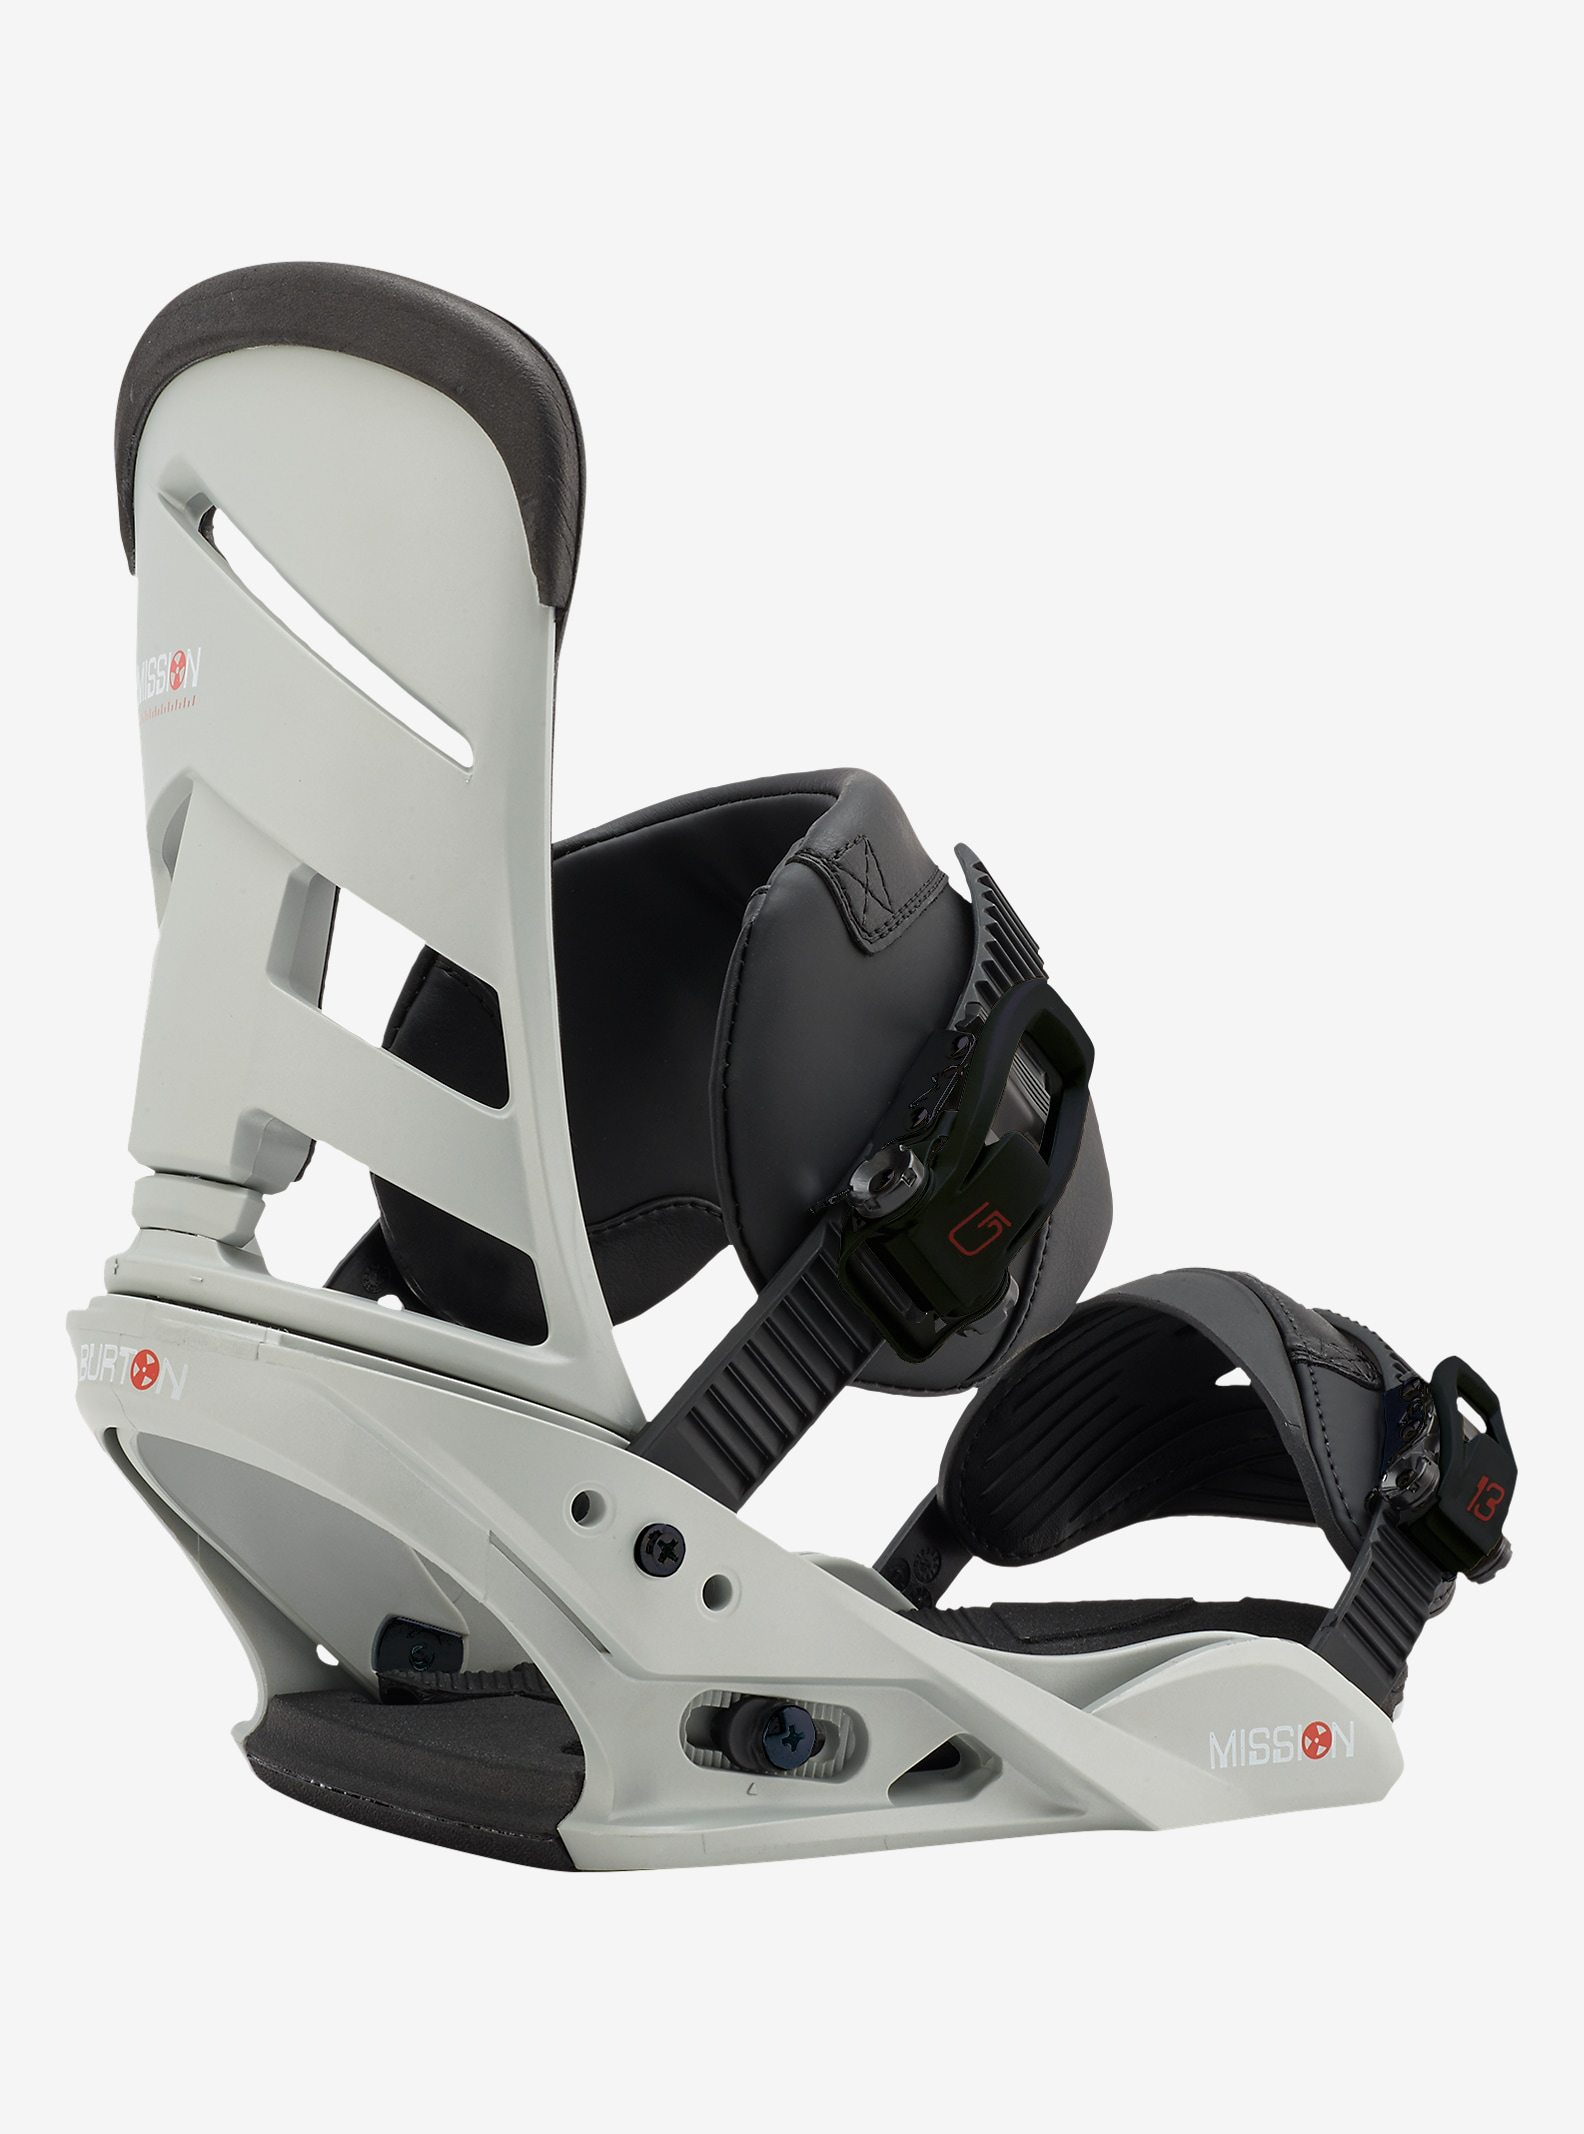 Burton Mission Snowboard Binding shown in Gnarly Sheen